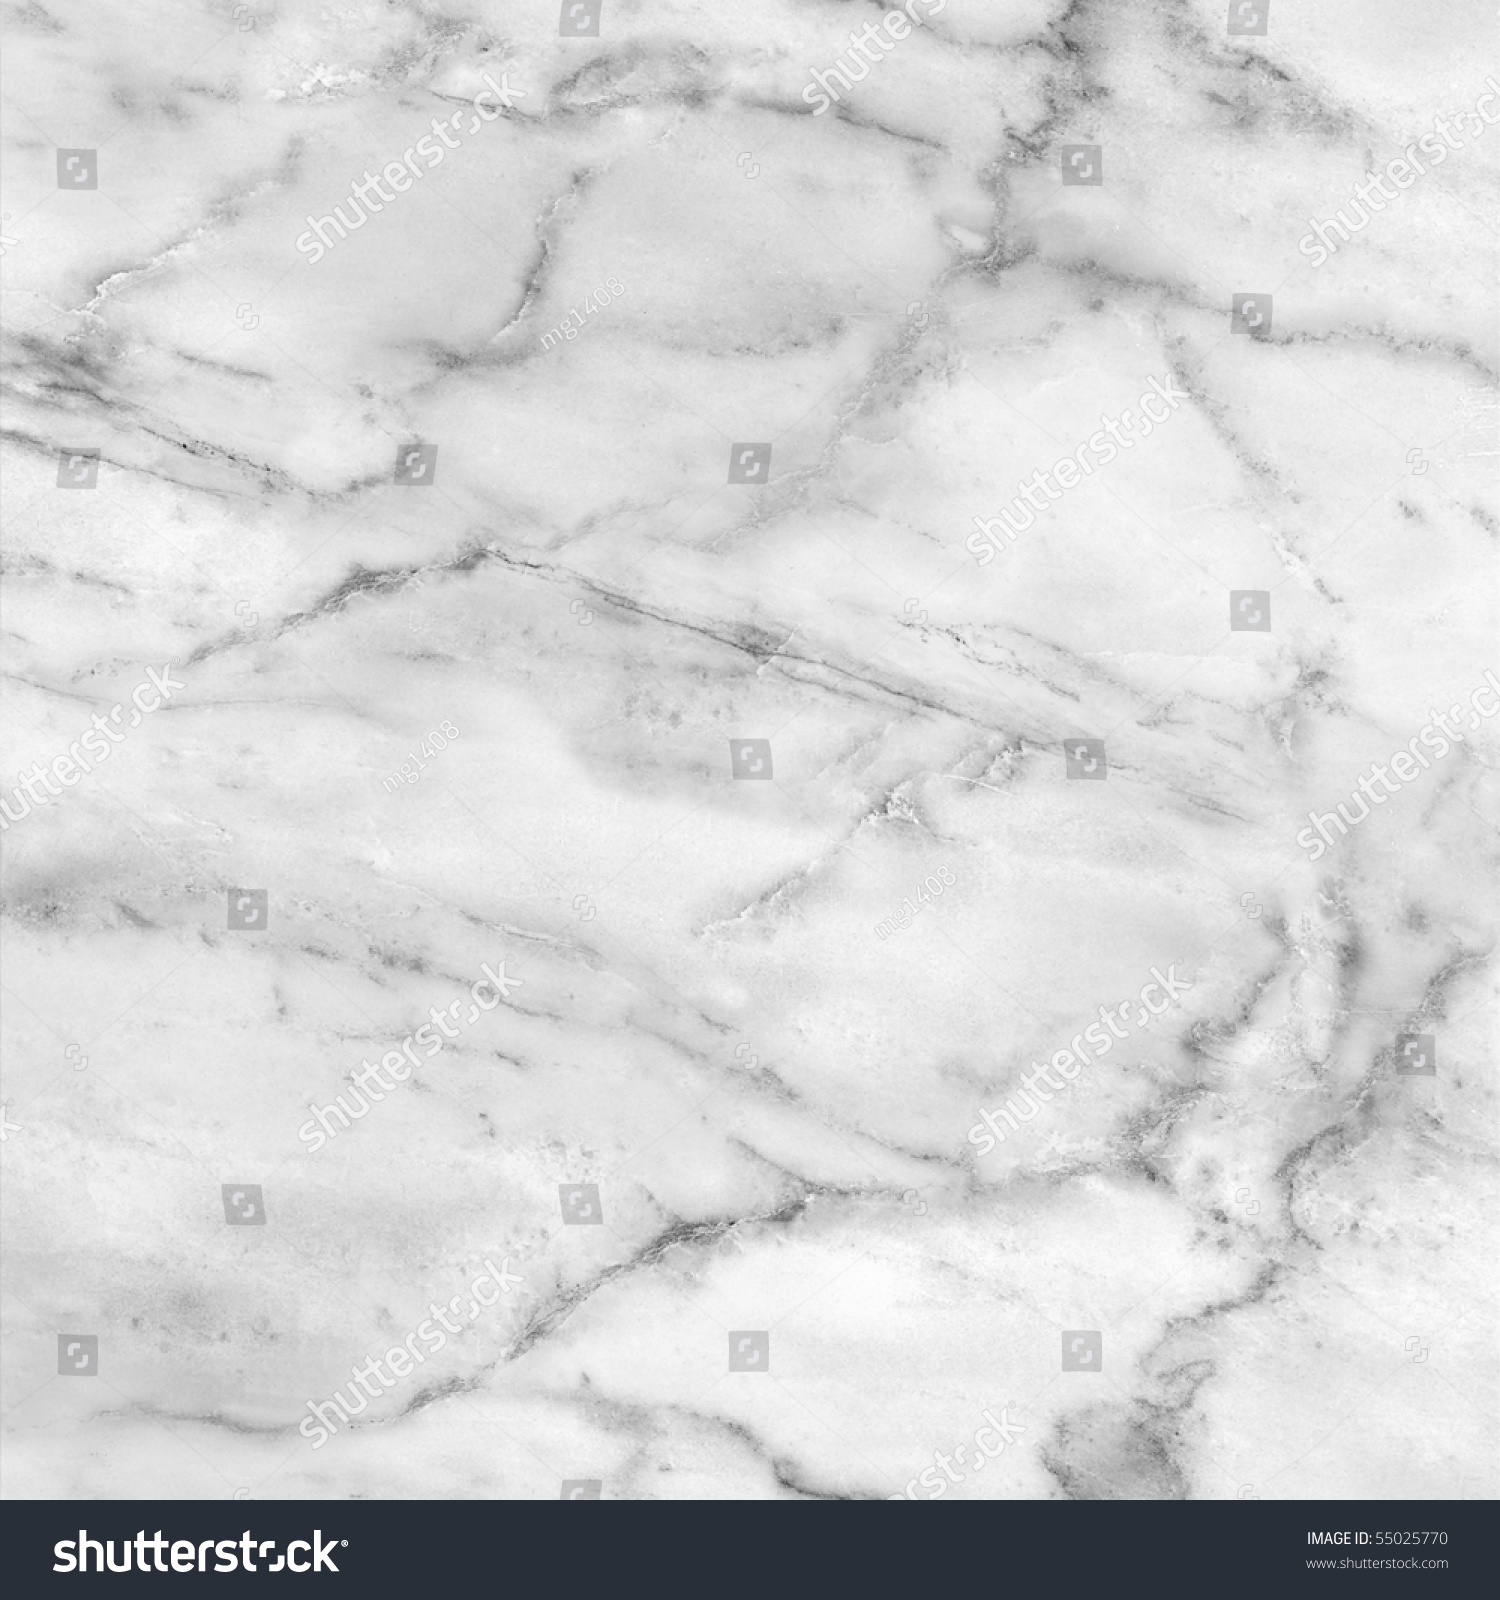 Free Photo White Marble Background Stone Speckles